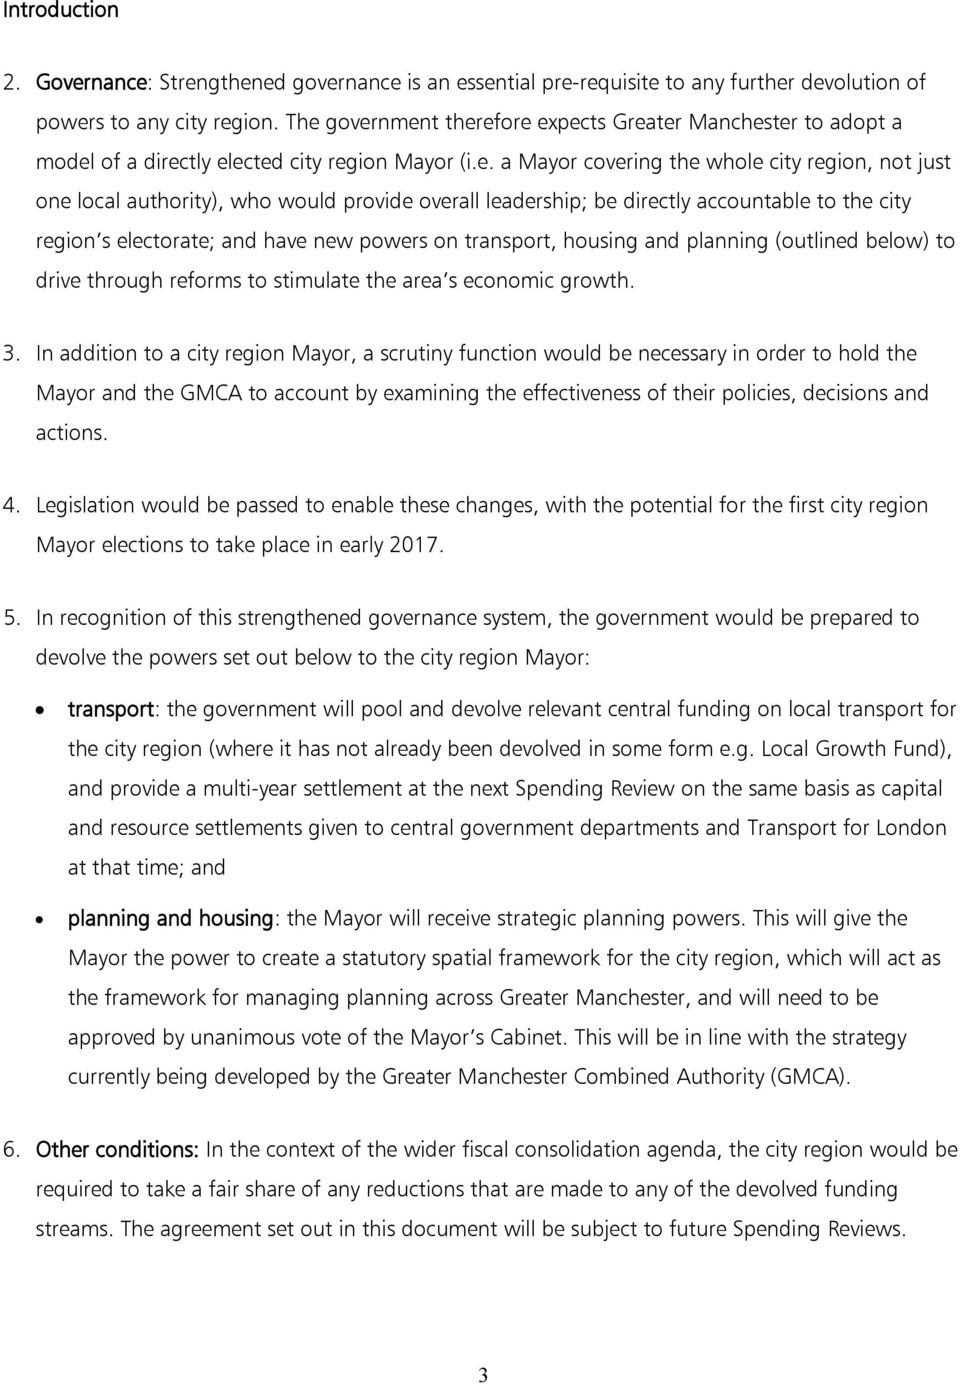 provide overall leadership; be directly accountable to the city region s electorate; and have new powers on transport, housing and planning (outlined below) to drive through reforms to stimulate the